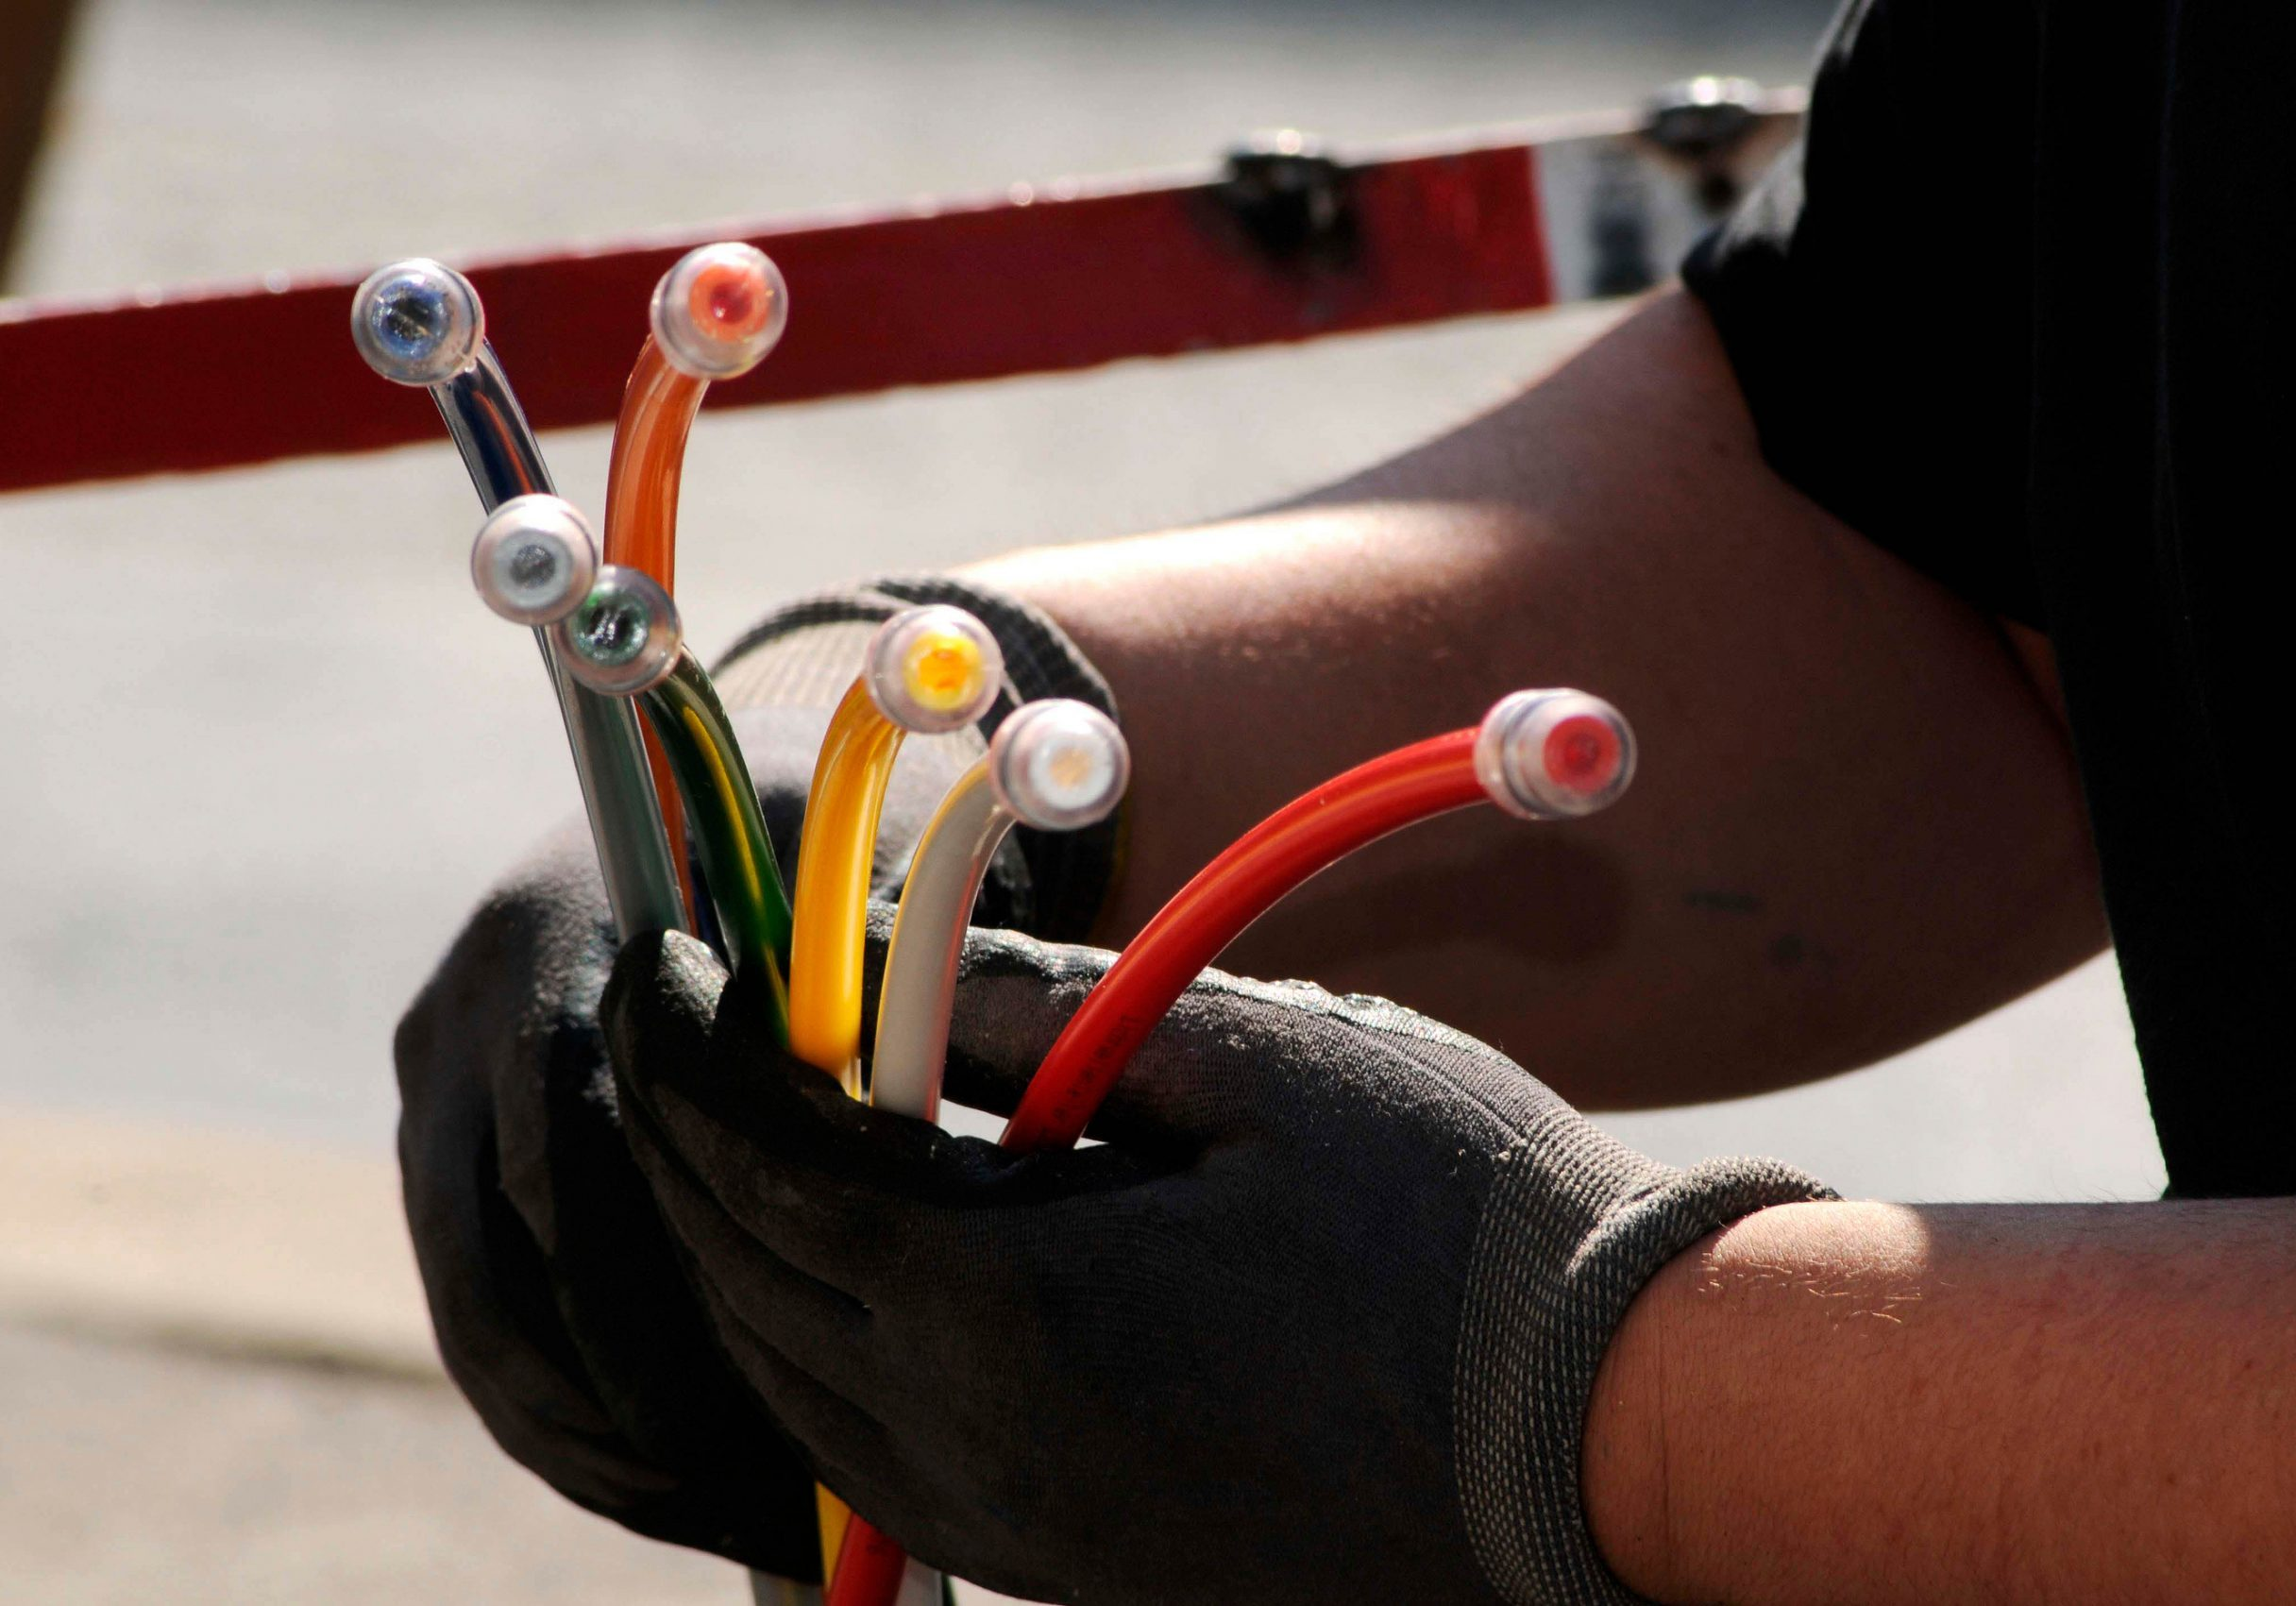 technician with multicolored fiber optic cables for high speed broadband internet